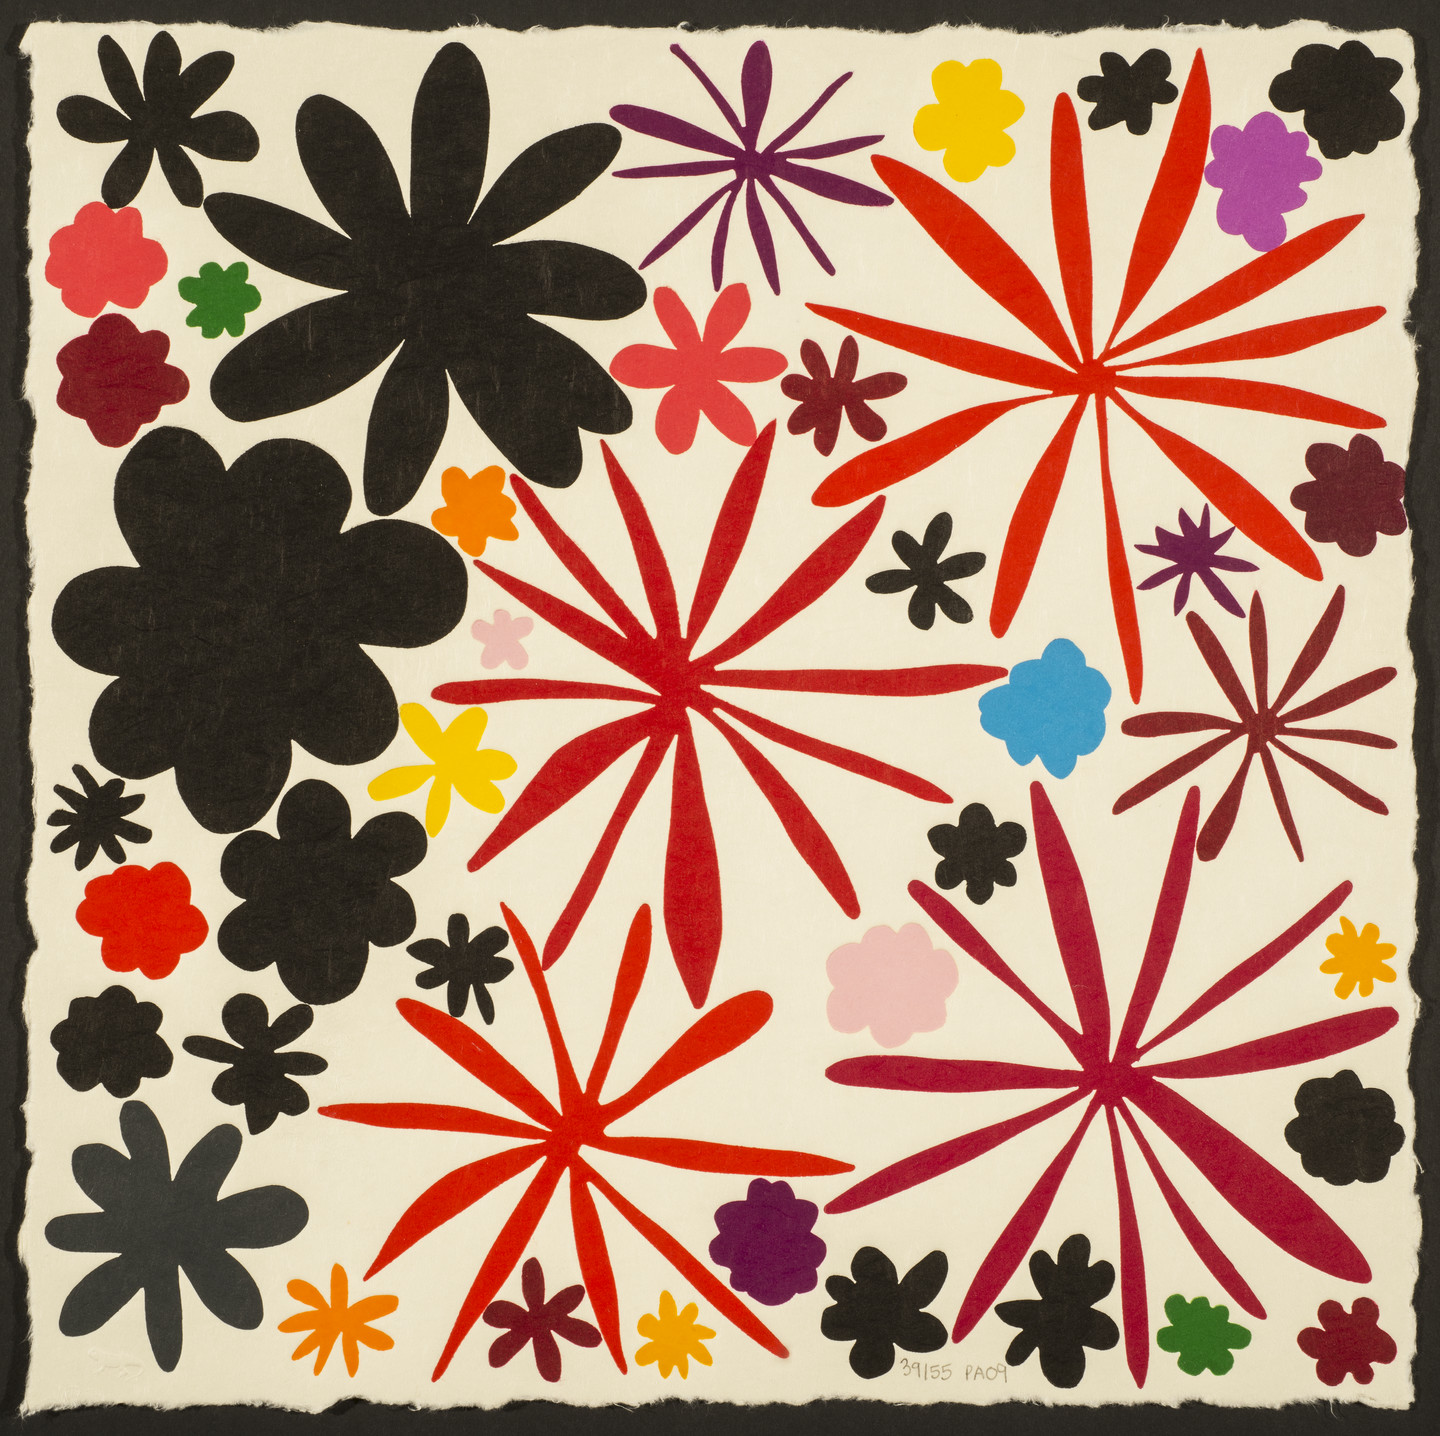 Bright, colorful flowers in multiple shapes and sizes pop against black flowers on one side of the canvas.